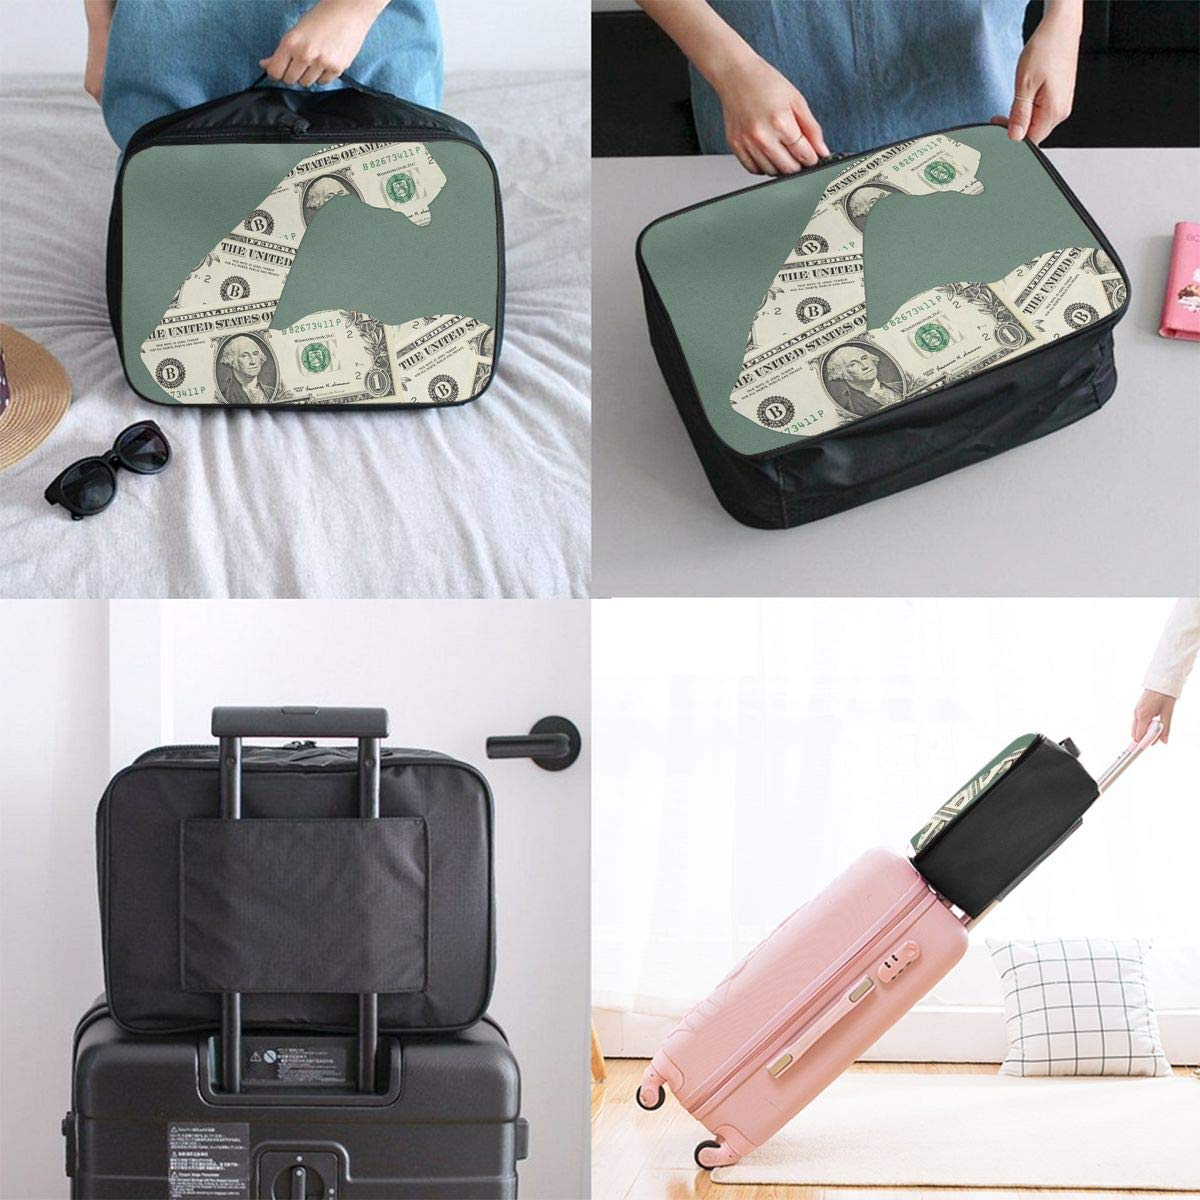 STWINW Billionaire Dollars Travel Fashion Lightweight Large Capacity Portable Waterproof Foldable Storage Carry Luggage Bag Luggage Duffle Tote Bag Hanging Travel Toiletry Bag Travel Makeup Bag